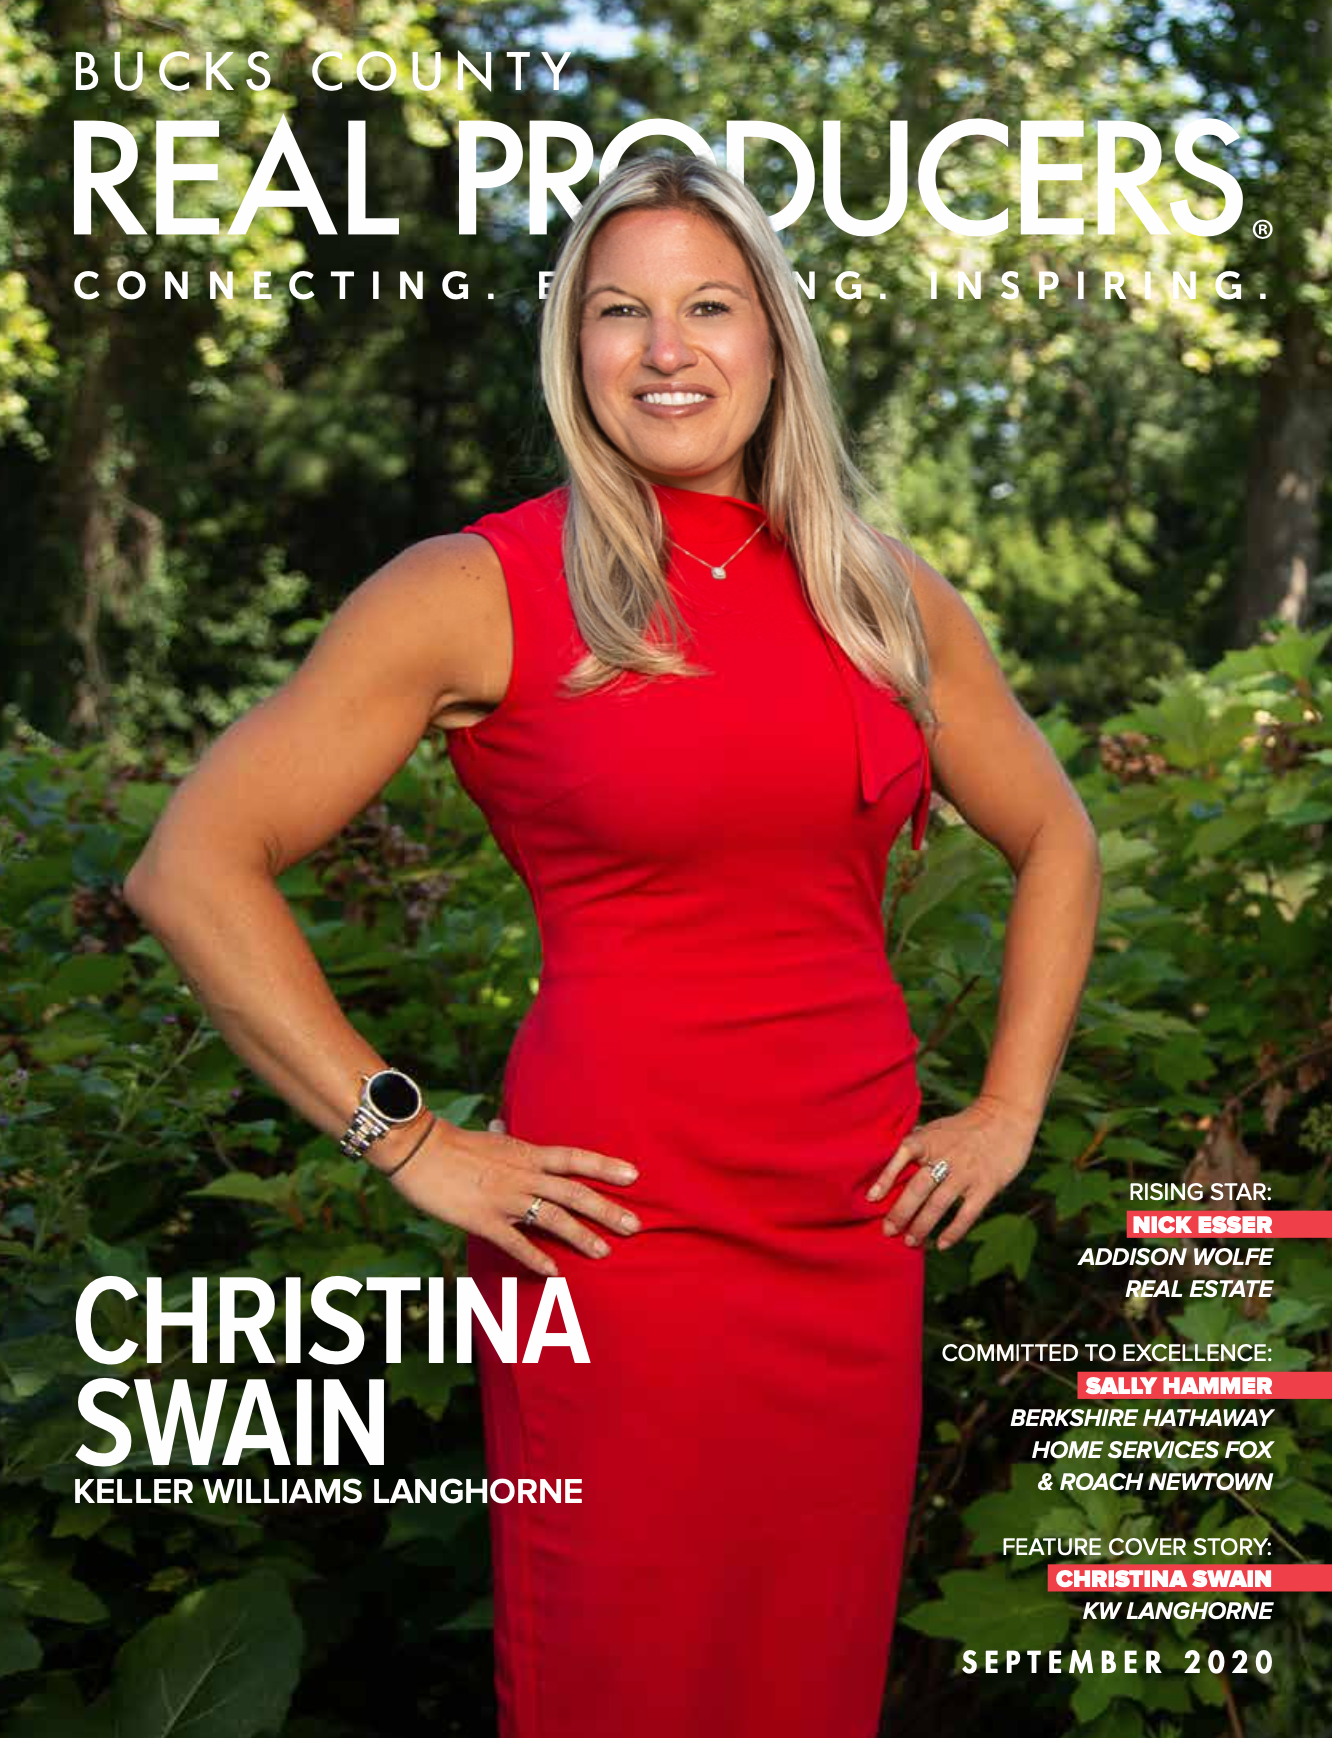 Bucks County Real Producers Magazine September 2020